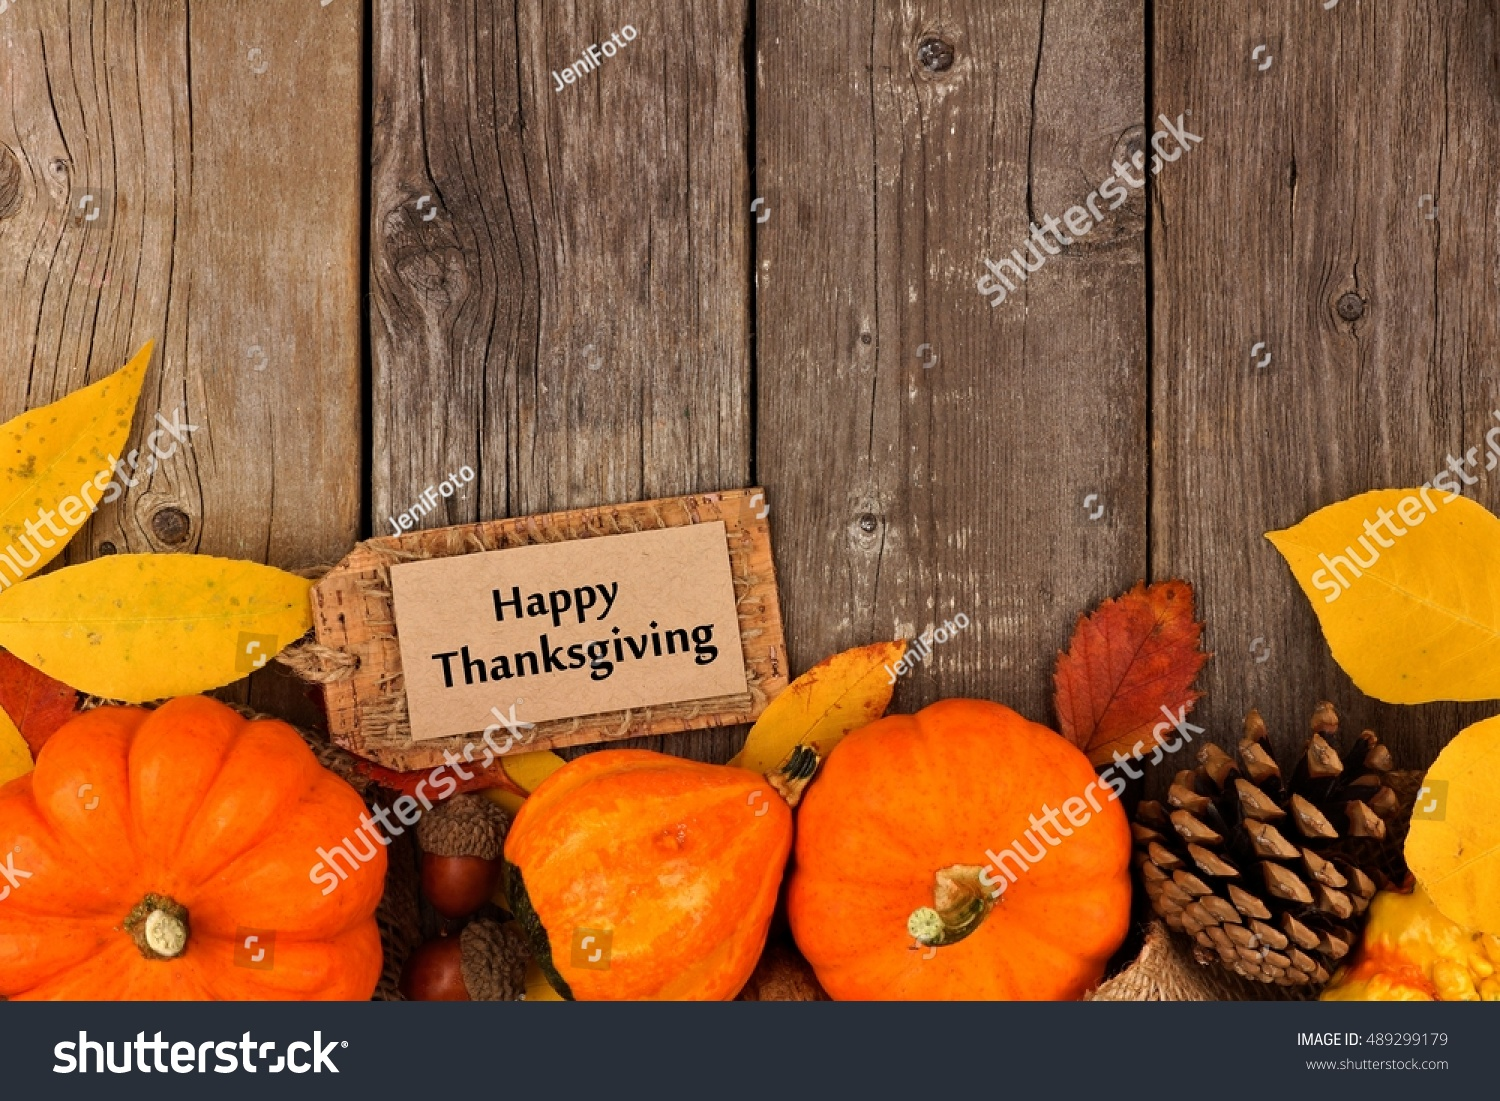 Happy Thanksgiving Gift Tag With Bottom Border Of Colorful Leaves And Pumpkins Over A Rustic Wood